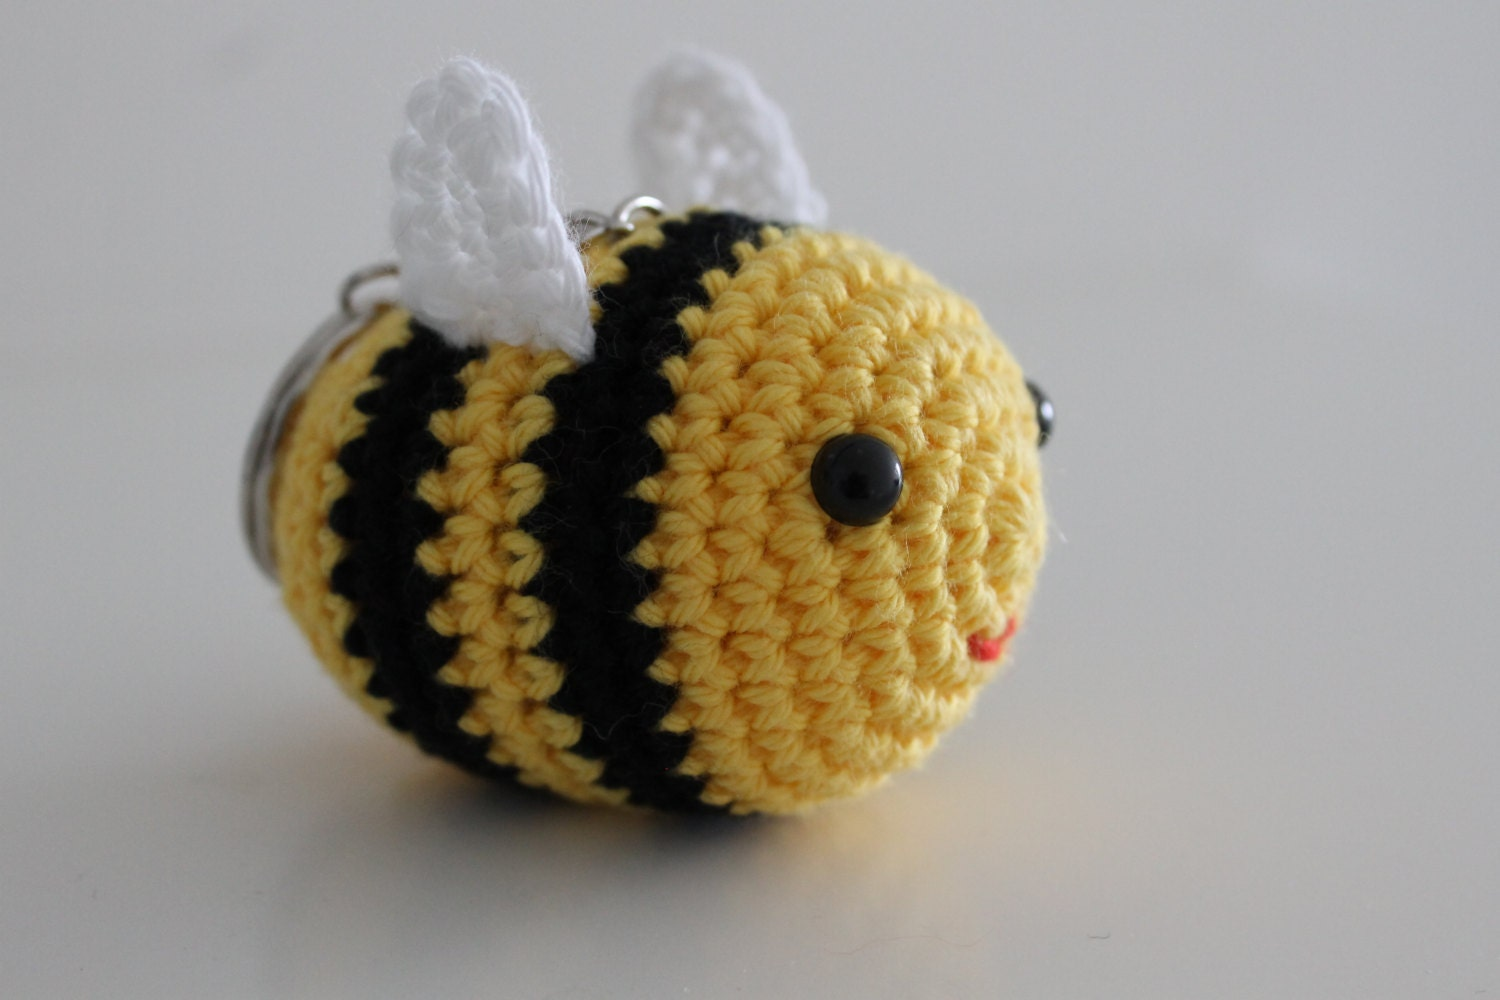 Crochet Bee Keychain on Create Your Own Traceable Name